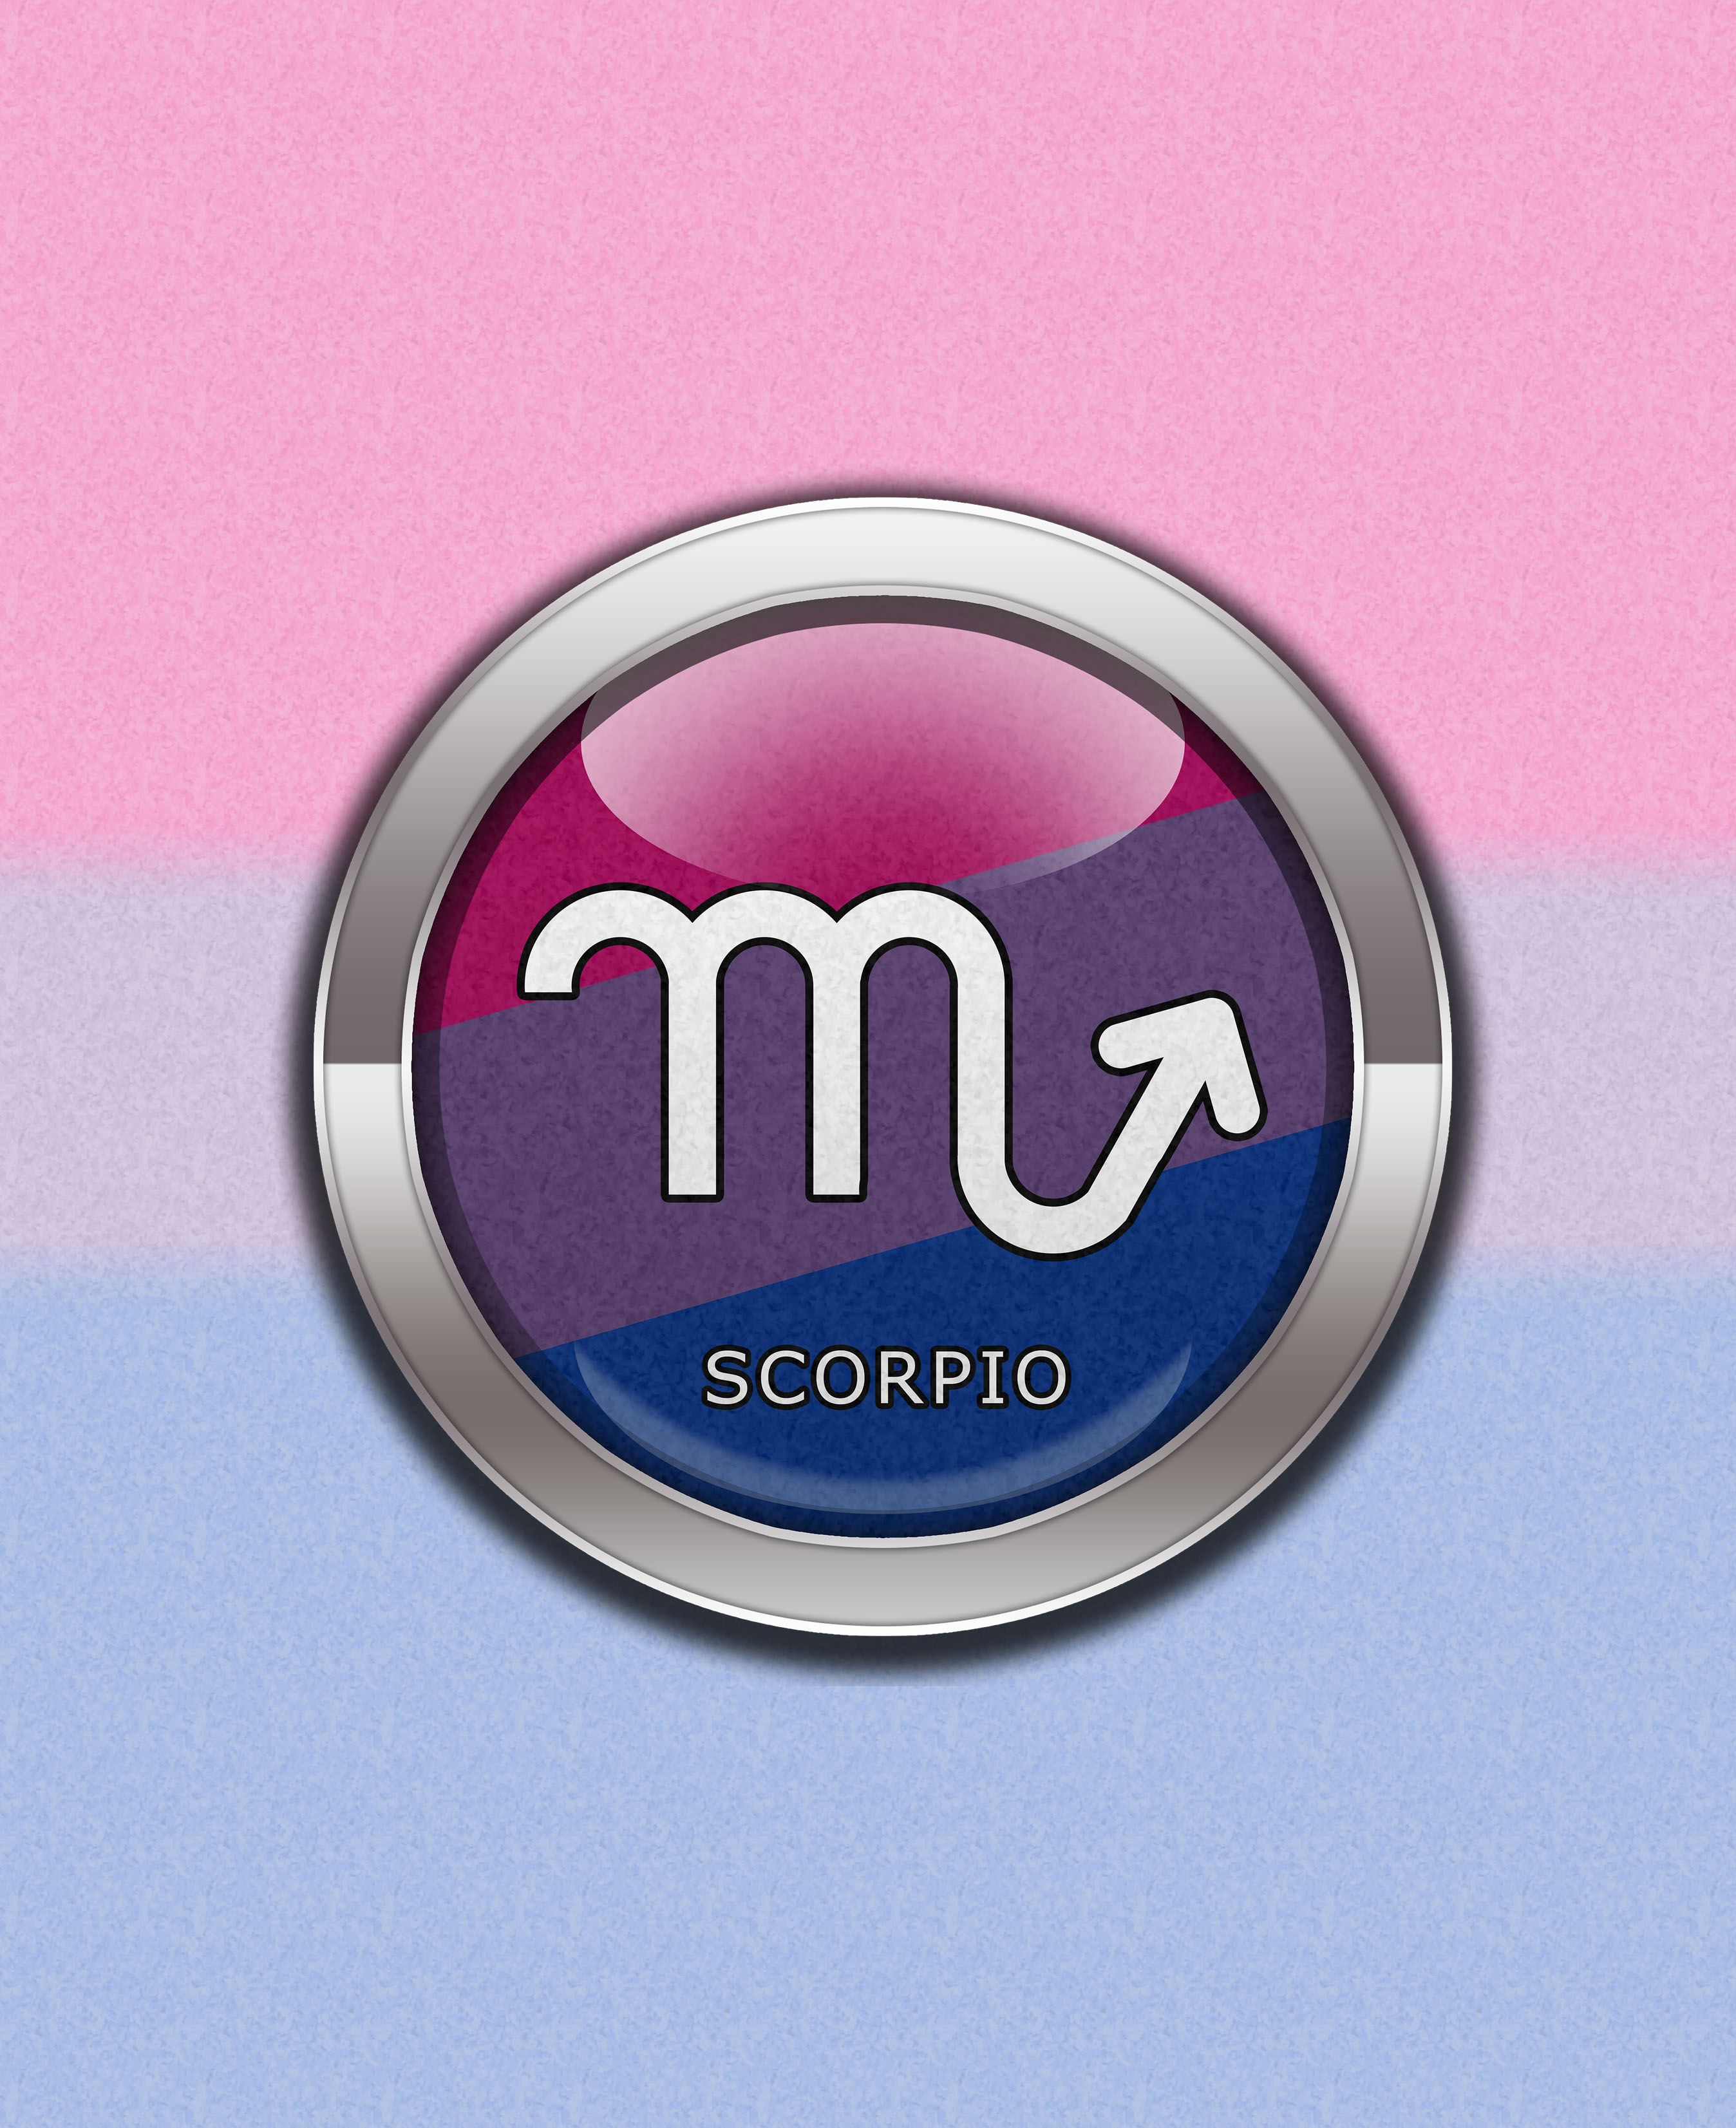 Scorpio bisexual pride bisexual pride scorpio horoscope symbol in scorpio bisexual pride bisexual pride scorpio horoscope symbol in bisexual pride flag colors round biocorpaavc Gallery